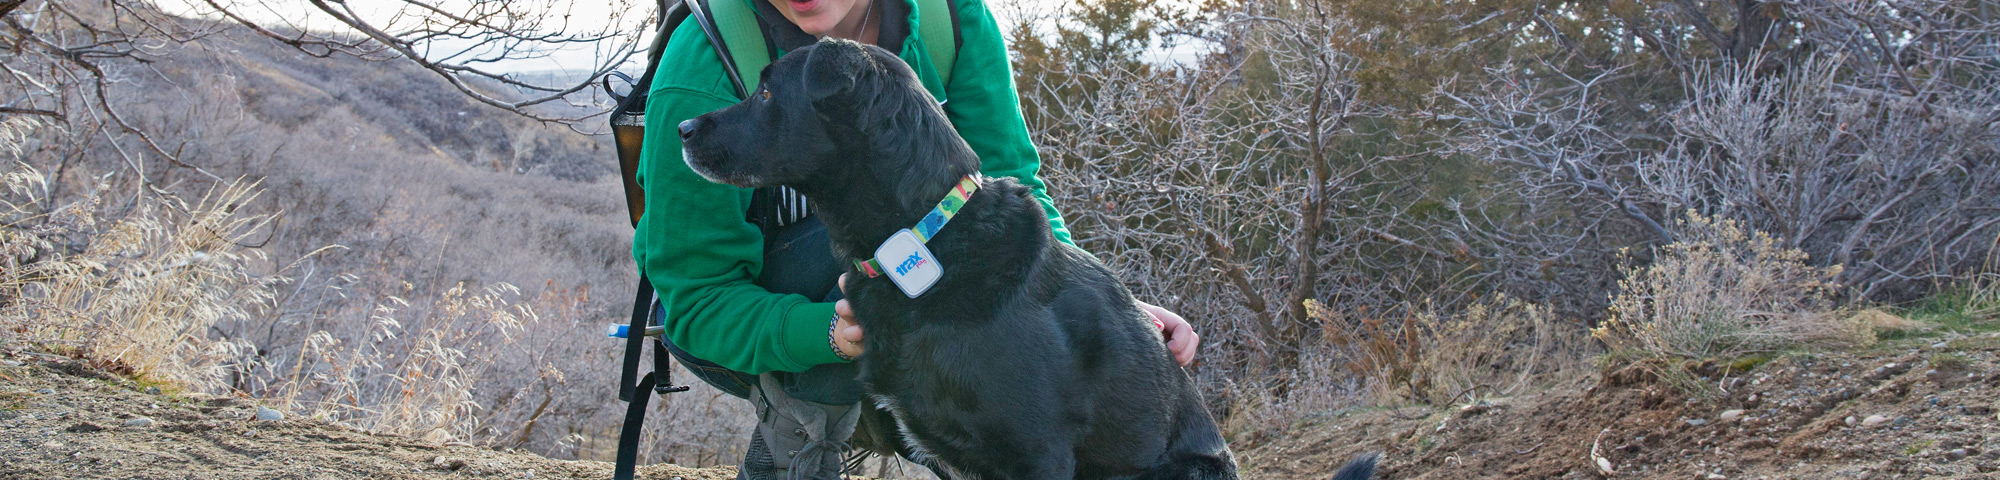 Best Pet Tracking Devices 2019 - GPS Trackers for Dogs, Cats